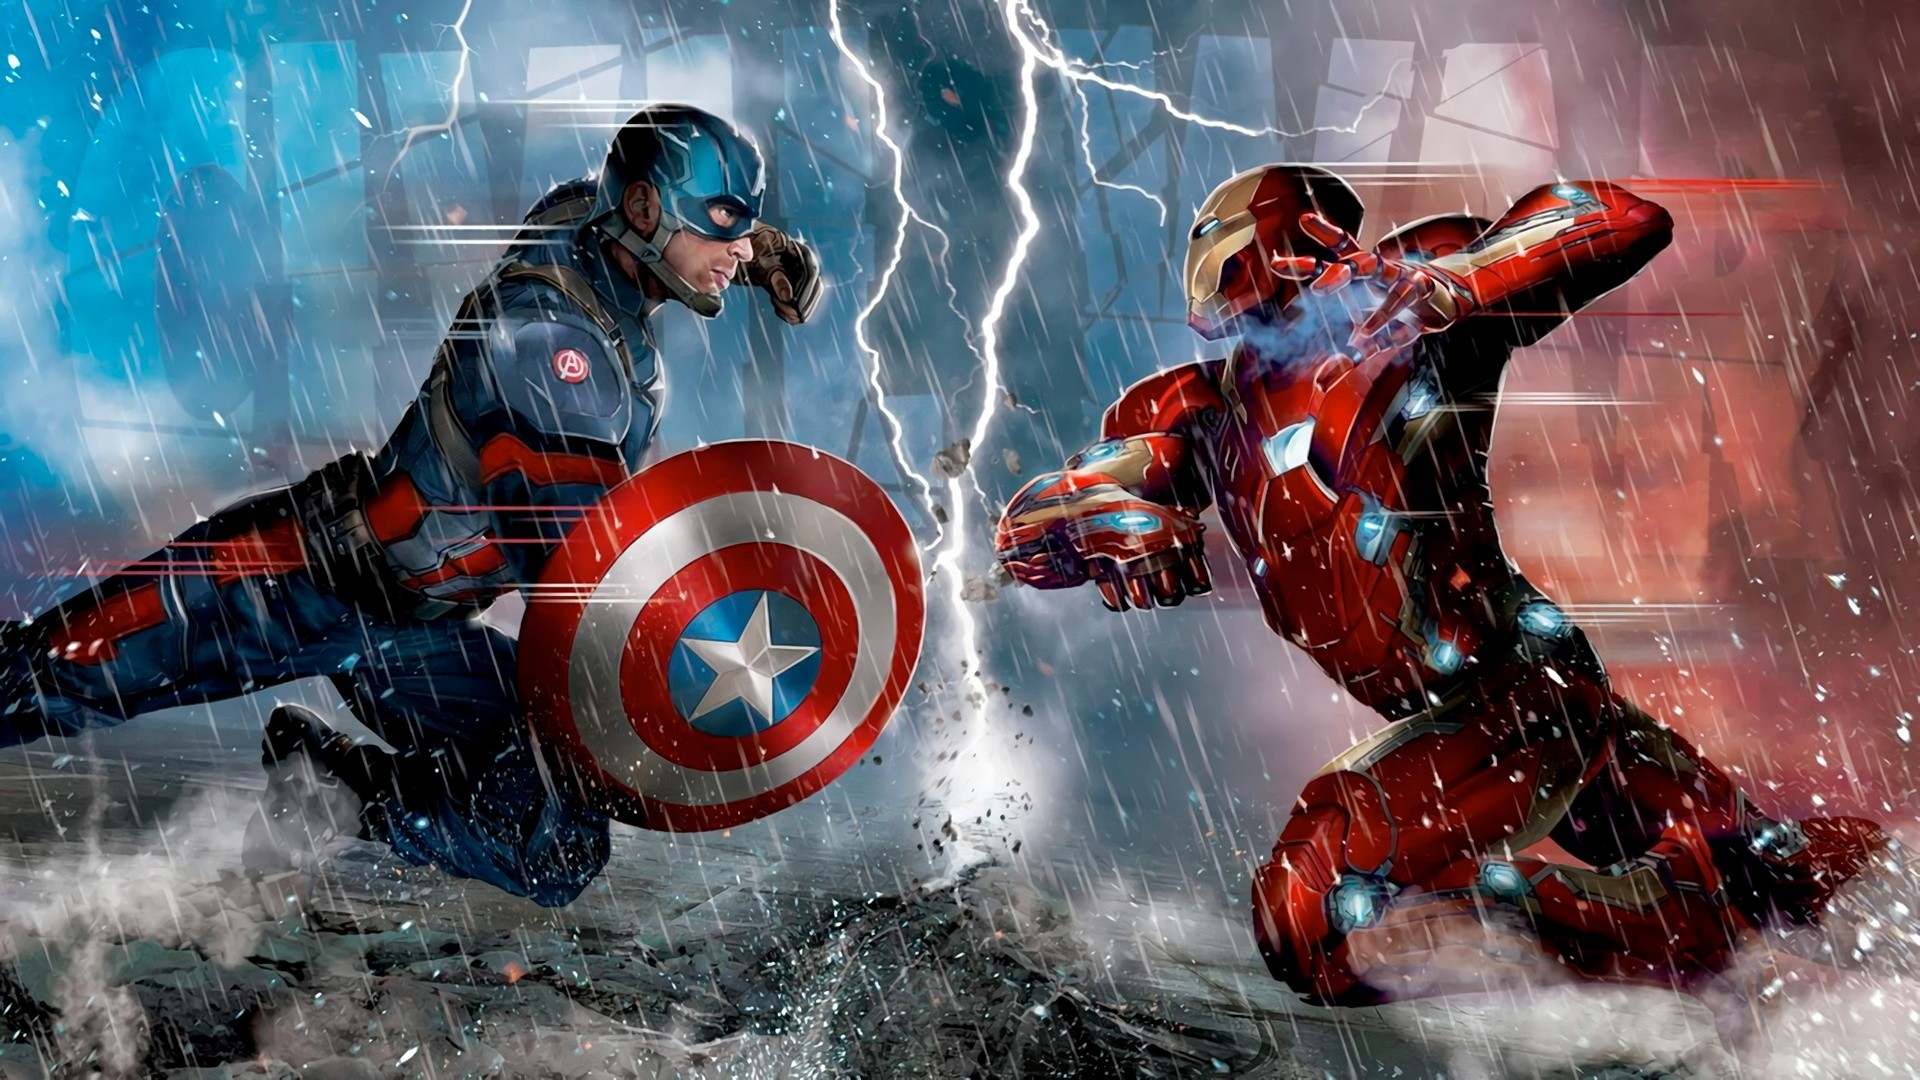 1920x1080 Captain america-vs-iron man-wallpaper-art.jpg